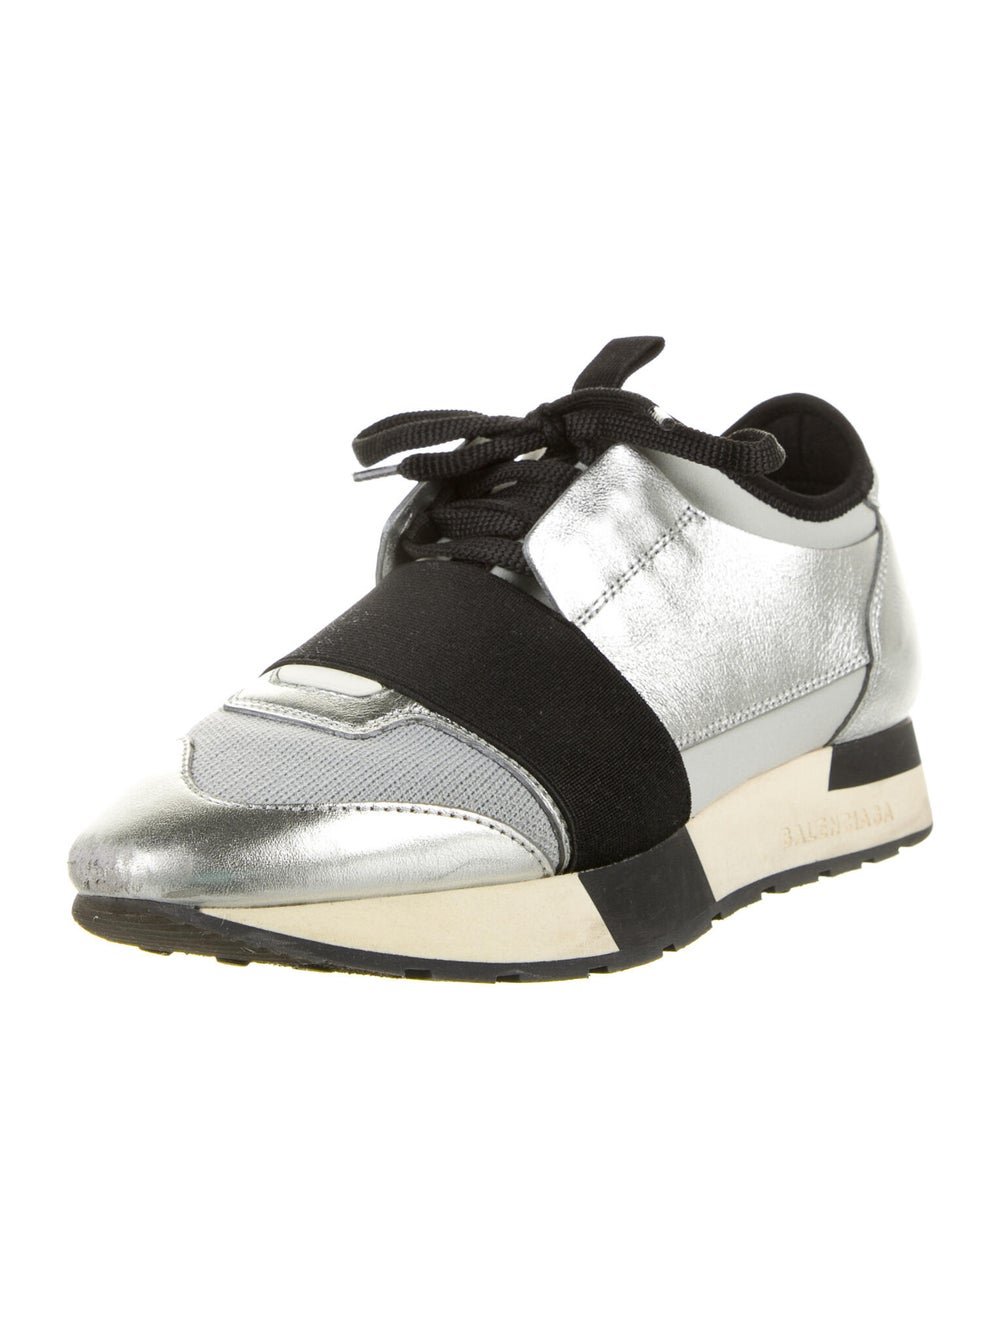 Balenciaga Leather Athletic Sneakers Silver - image 2